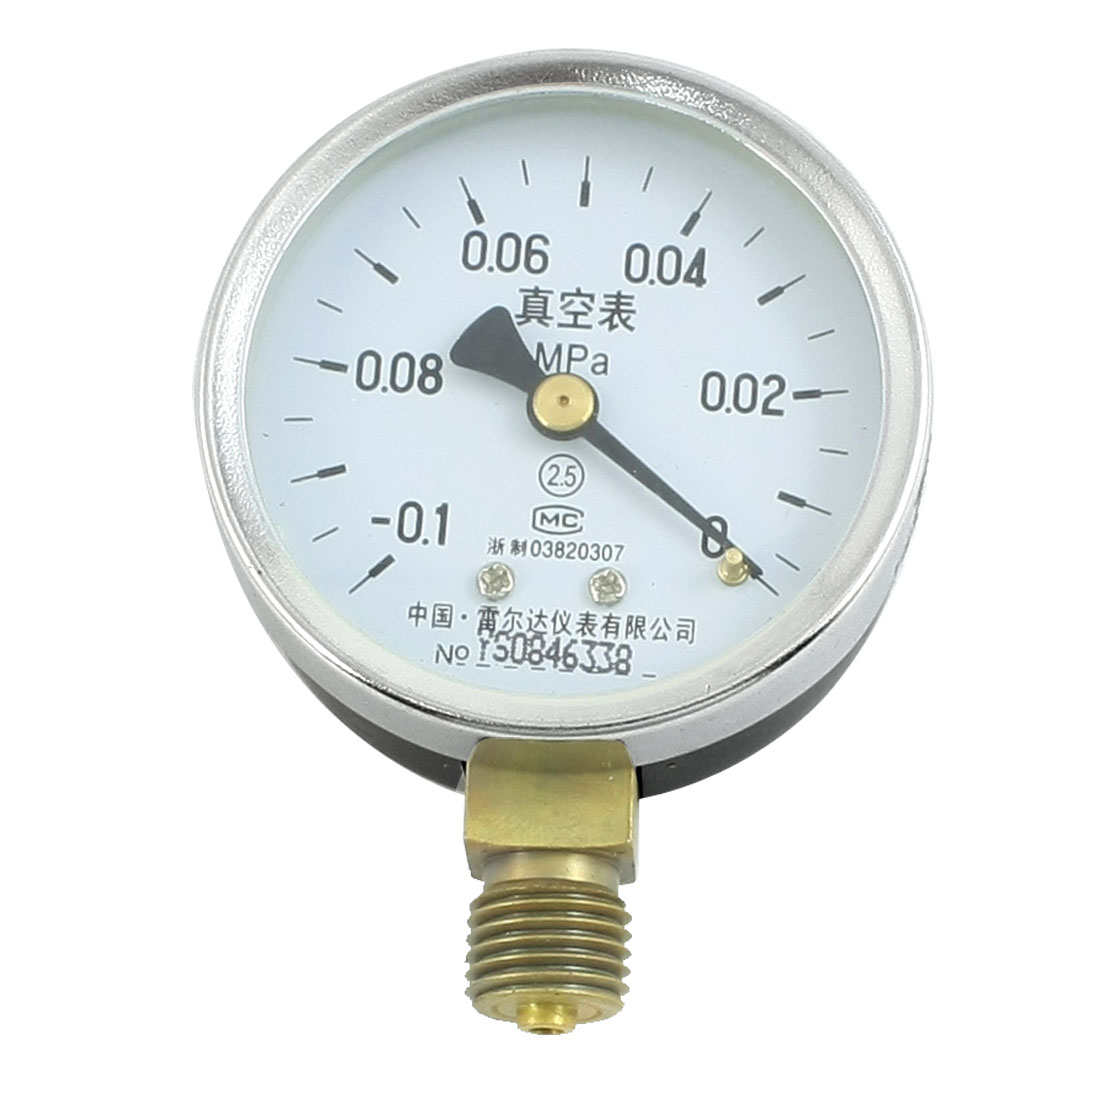 Water Temp Oil Air Pneumatic Vacuum Pressure Meter Gauge -0.1MPa to 0MPa 60mm